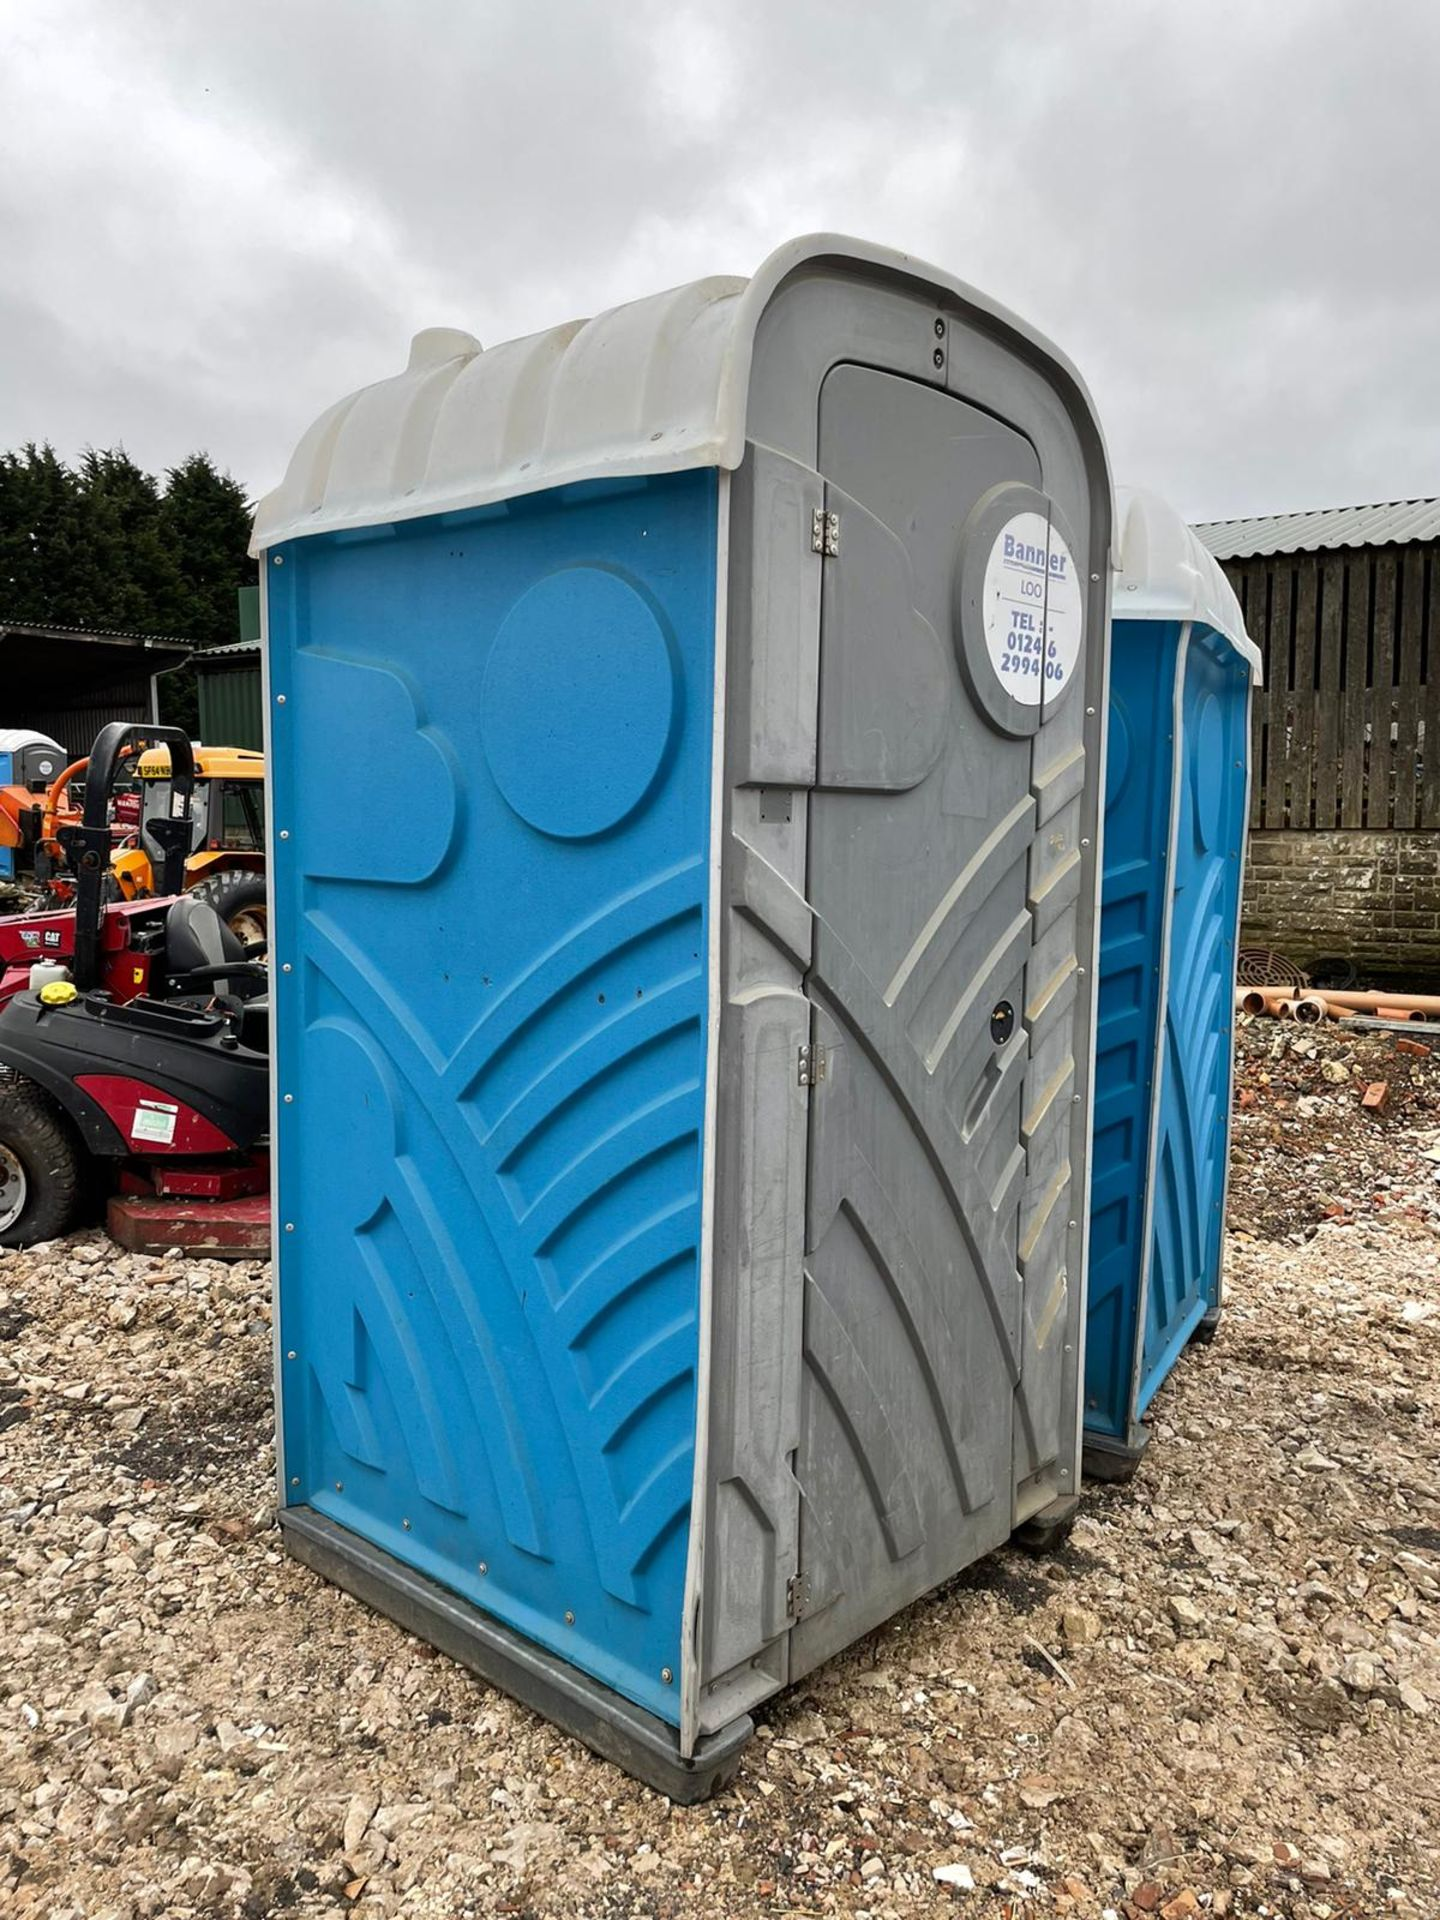 PORTALOO TOILET BLOCK *PLUS VAT* - Image 4 of 4